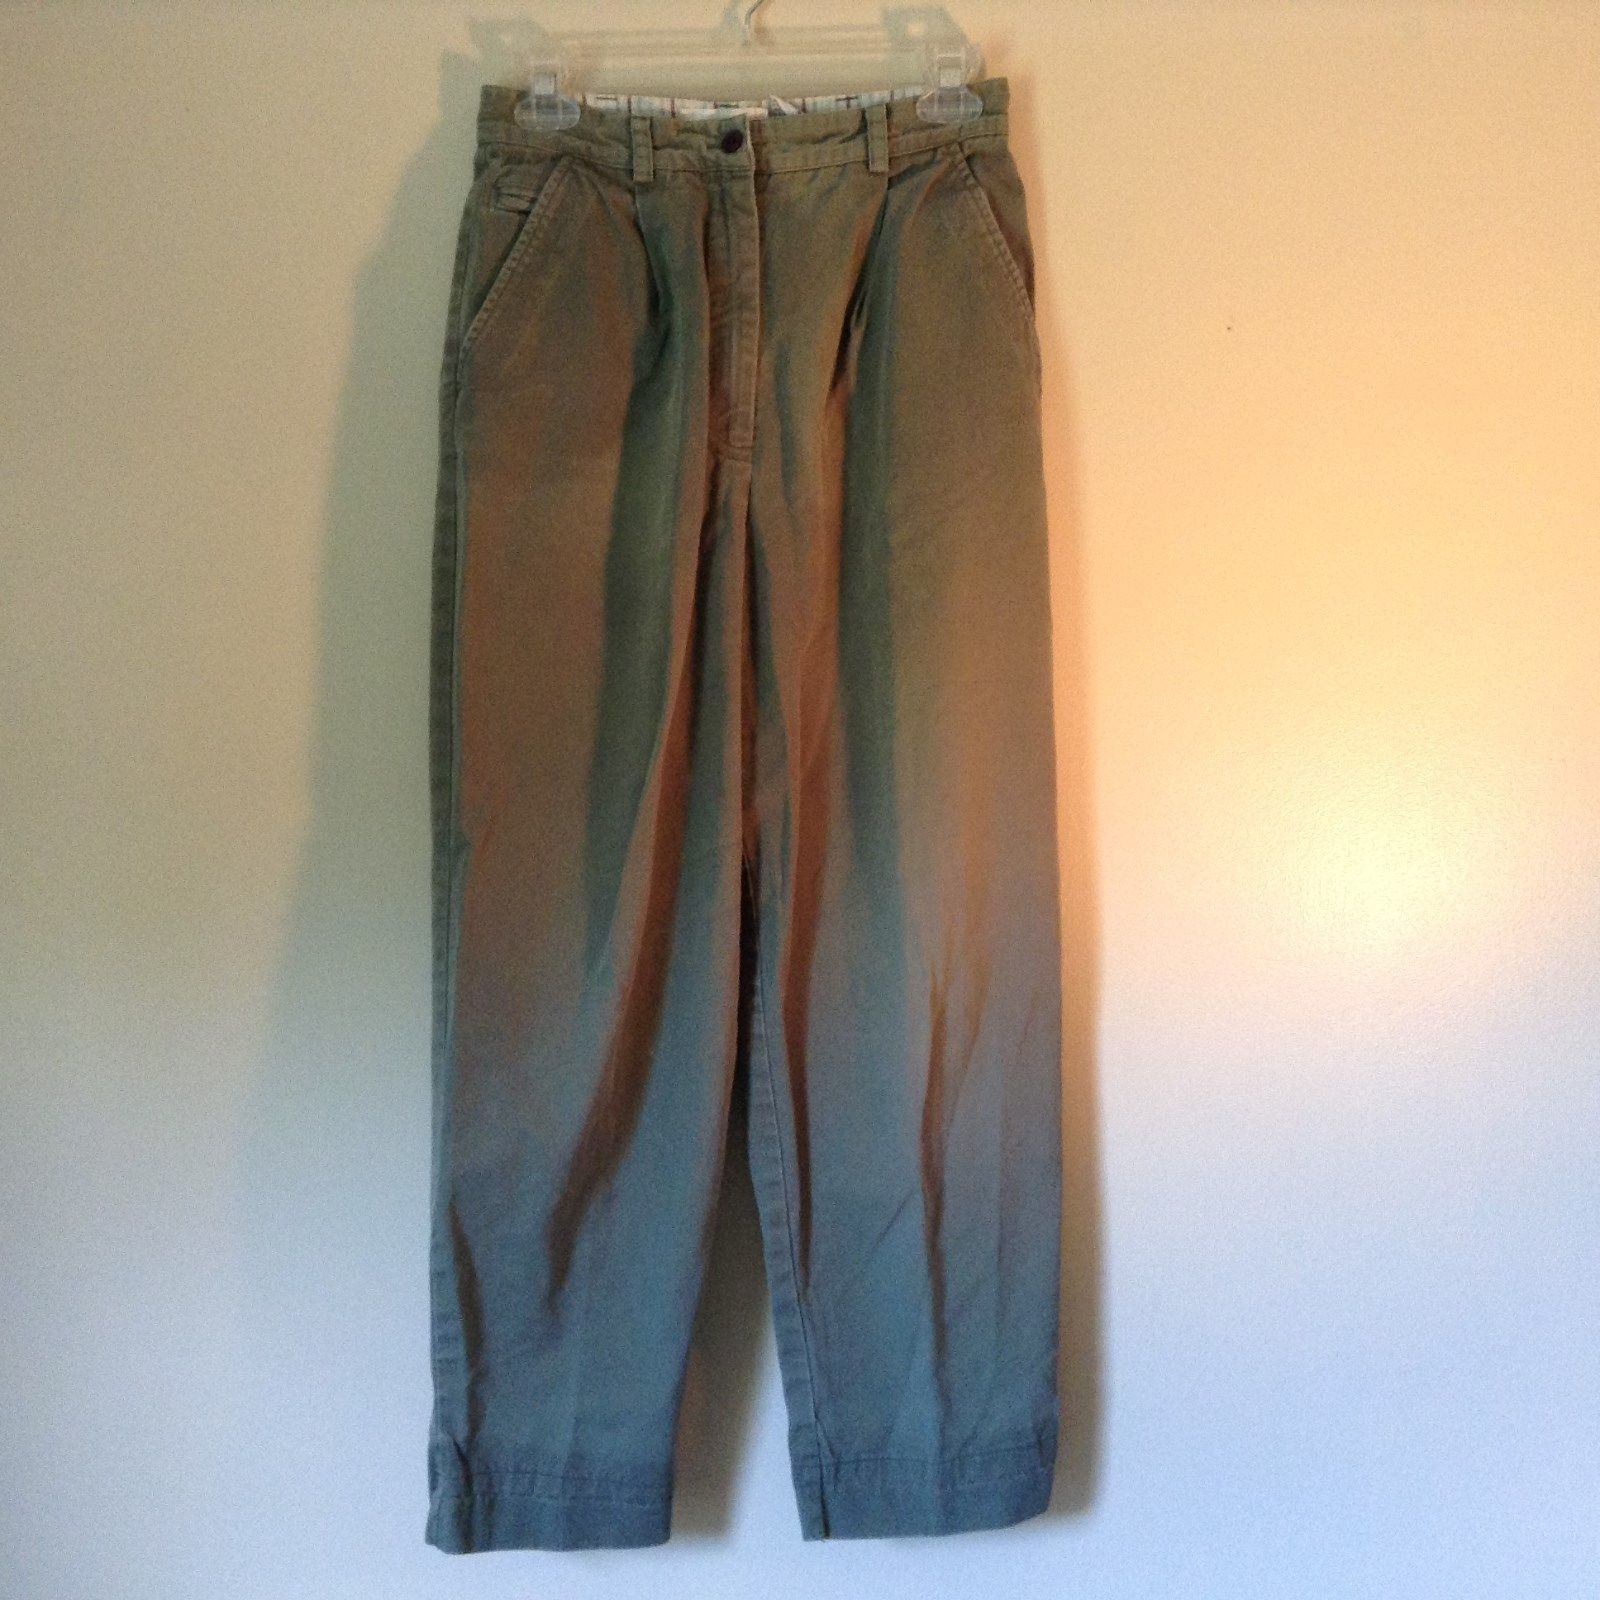 Talbots Green Casual Pants Zipper Button Closure 2 Front Pockets 1 Back Pocket